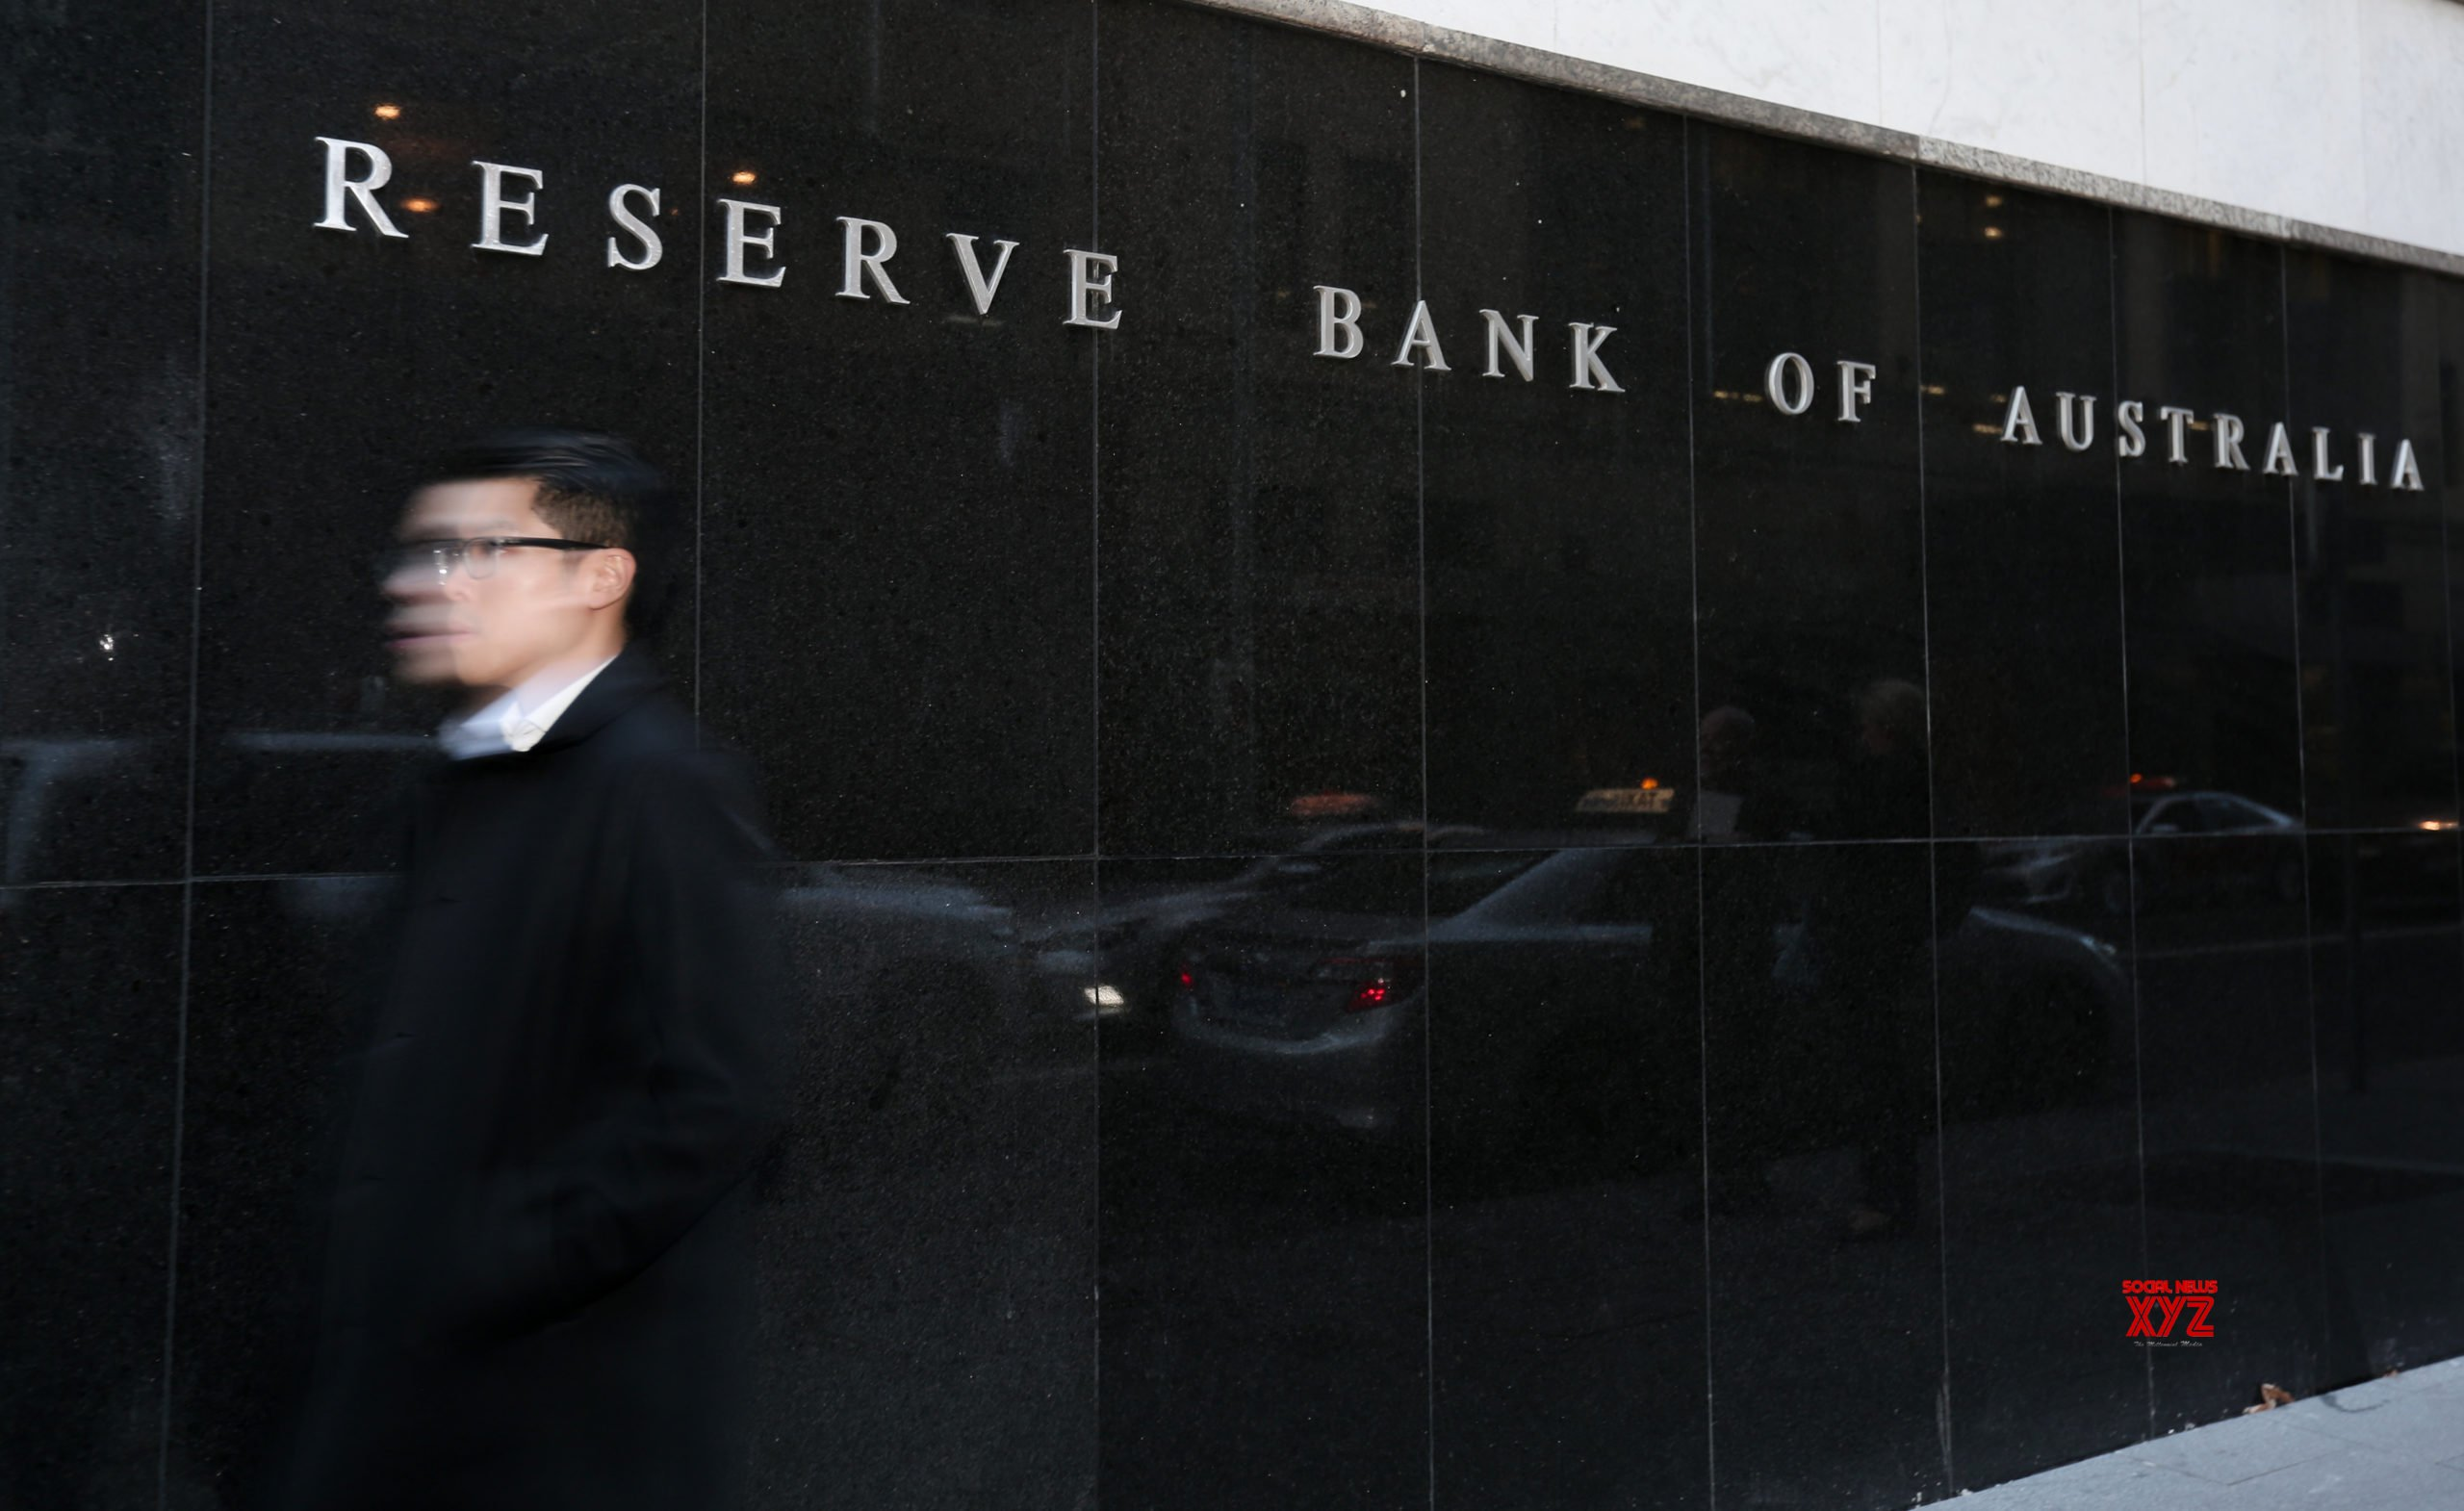 Dollar intervention costly and risky: RBA